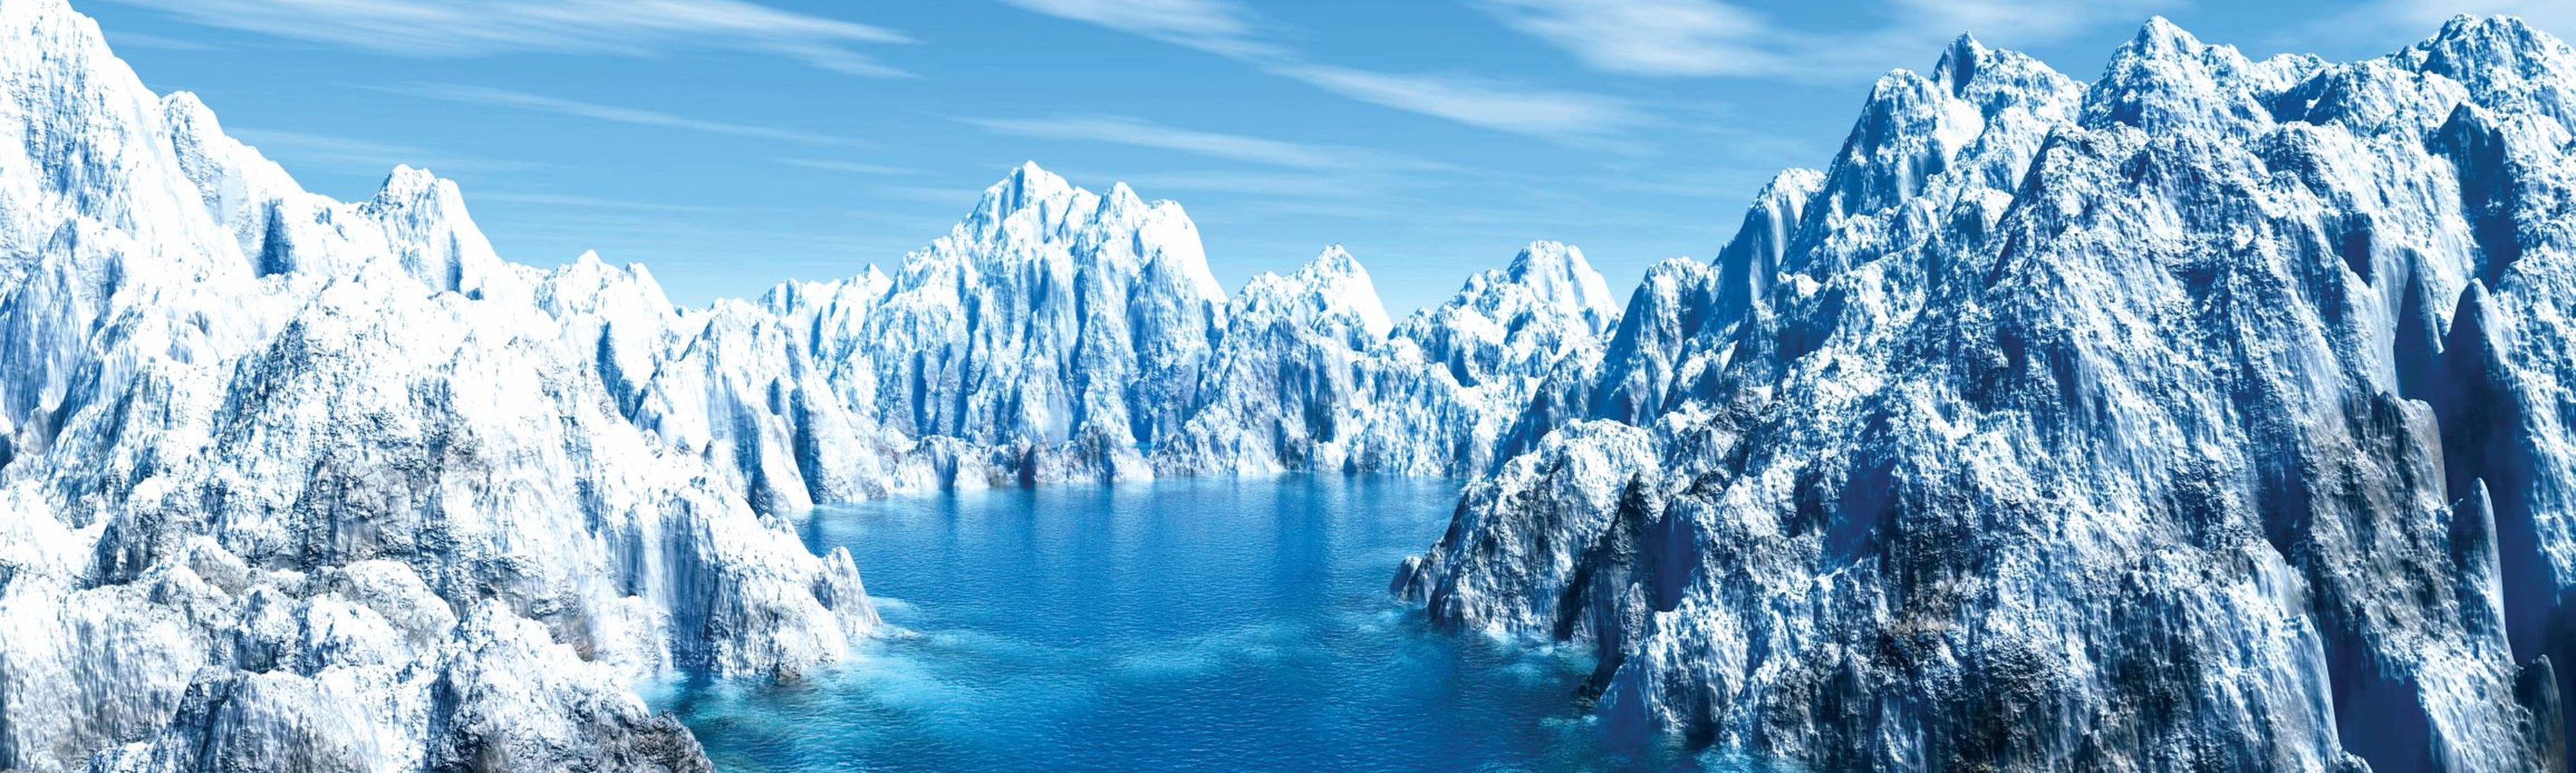 glaciers in antarctica in bright blue water